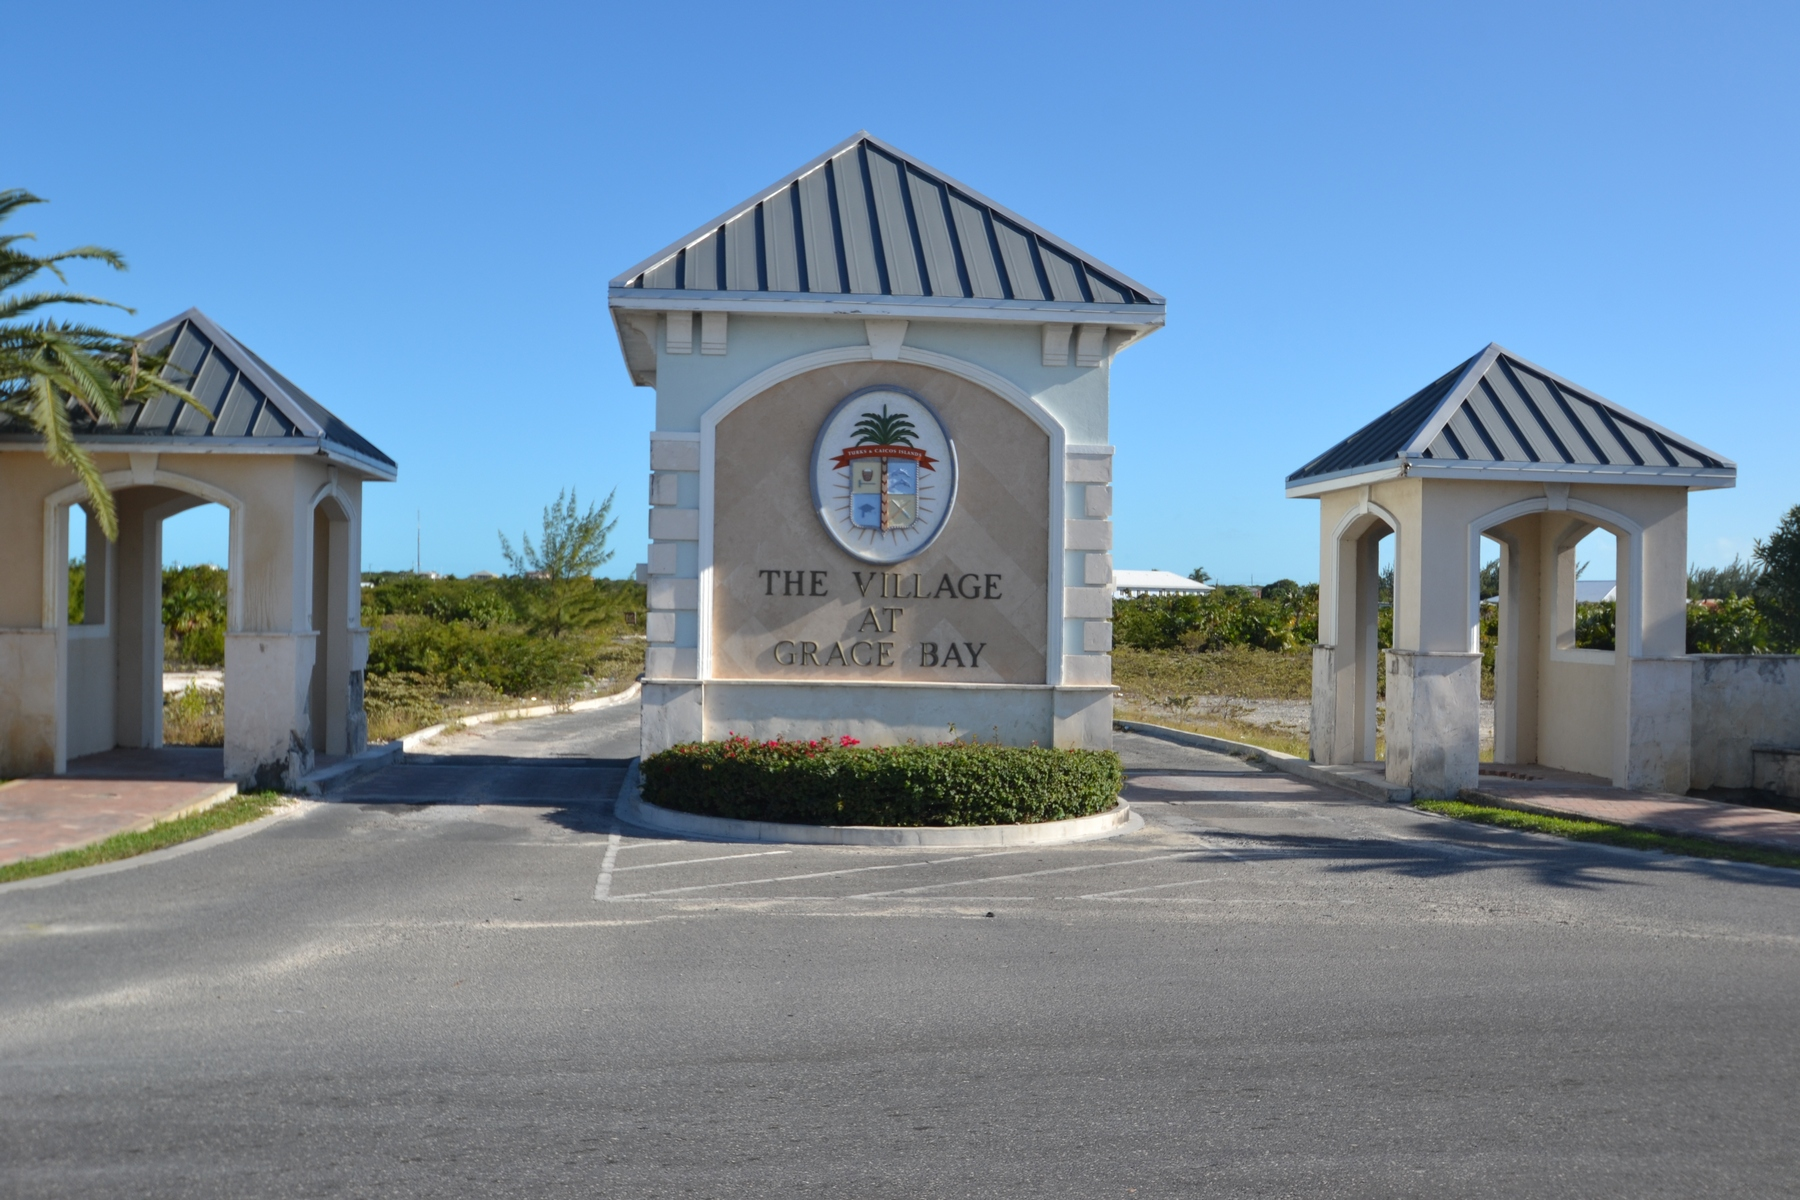 Property For Sale at Village at Grace Bay -Lot 185,186 & 187